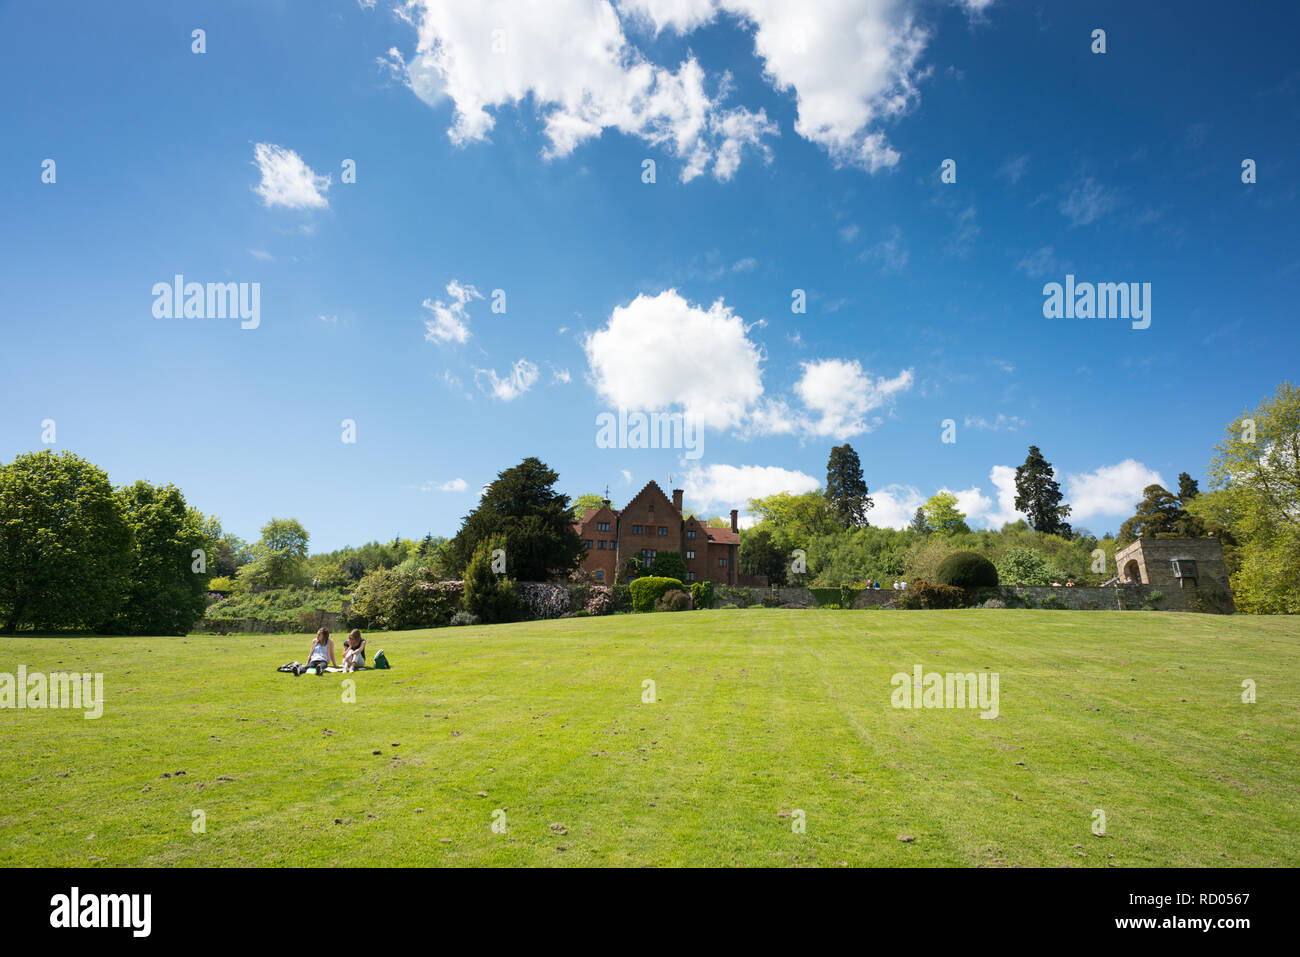 The gardens at Chartwell House near Westerham in Kent - Stock Image